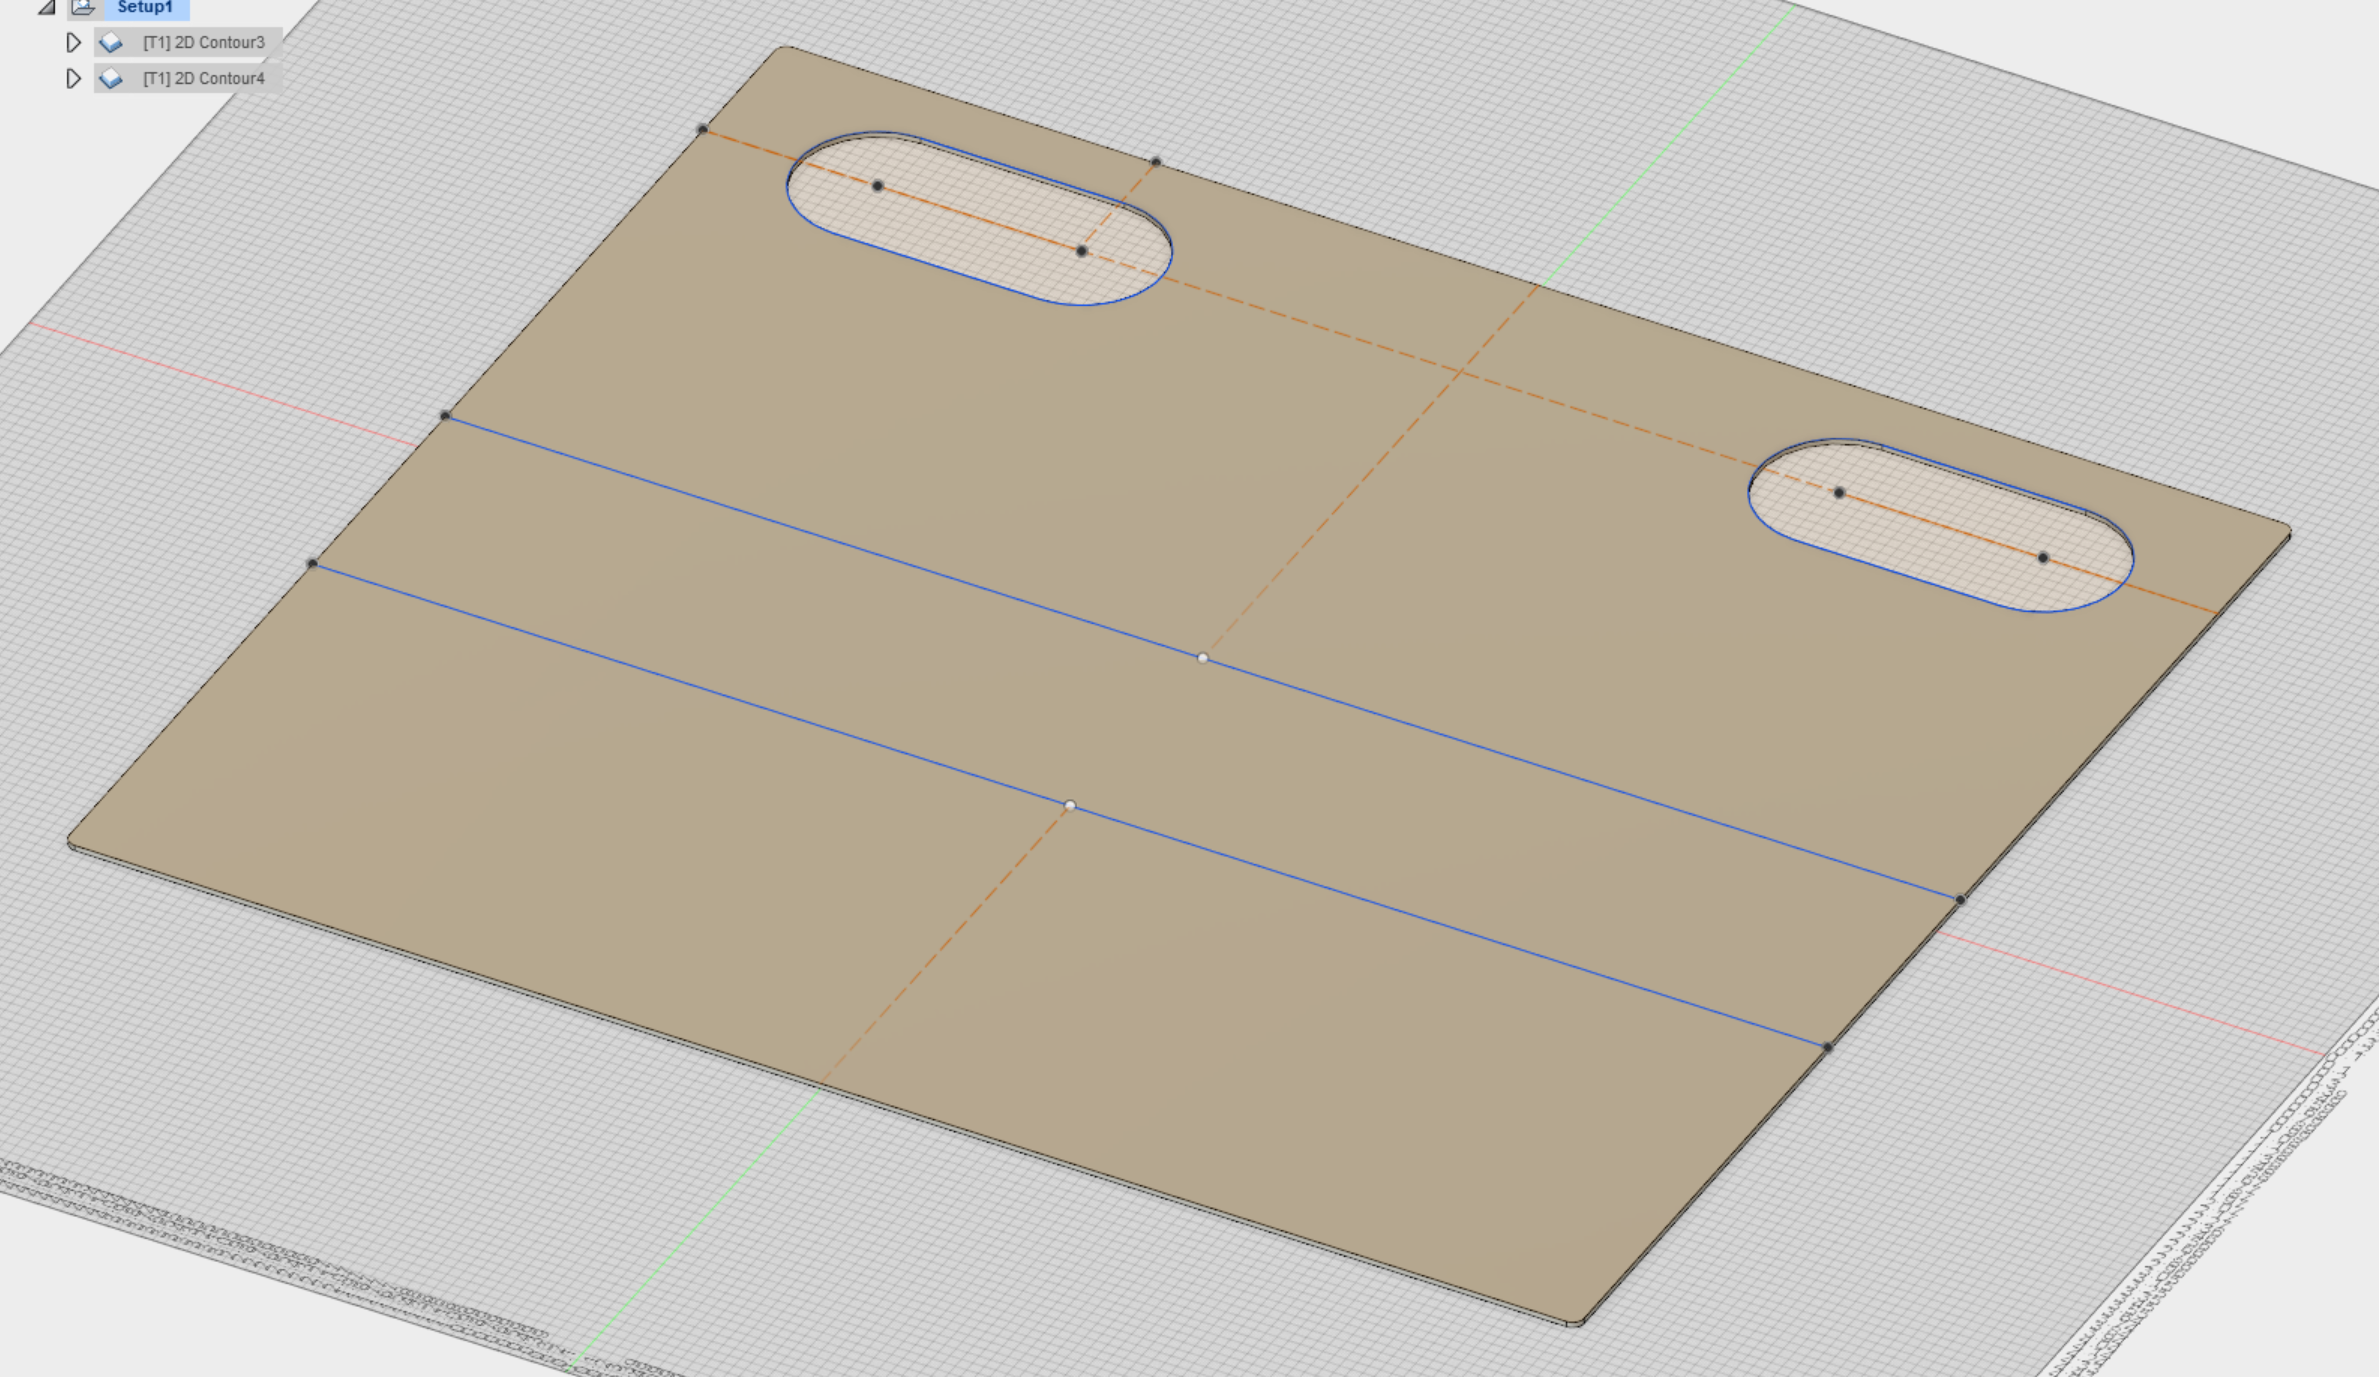 Etch in a straight line with V-Carve / Fusion 360 - Unsupported